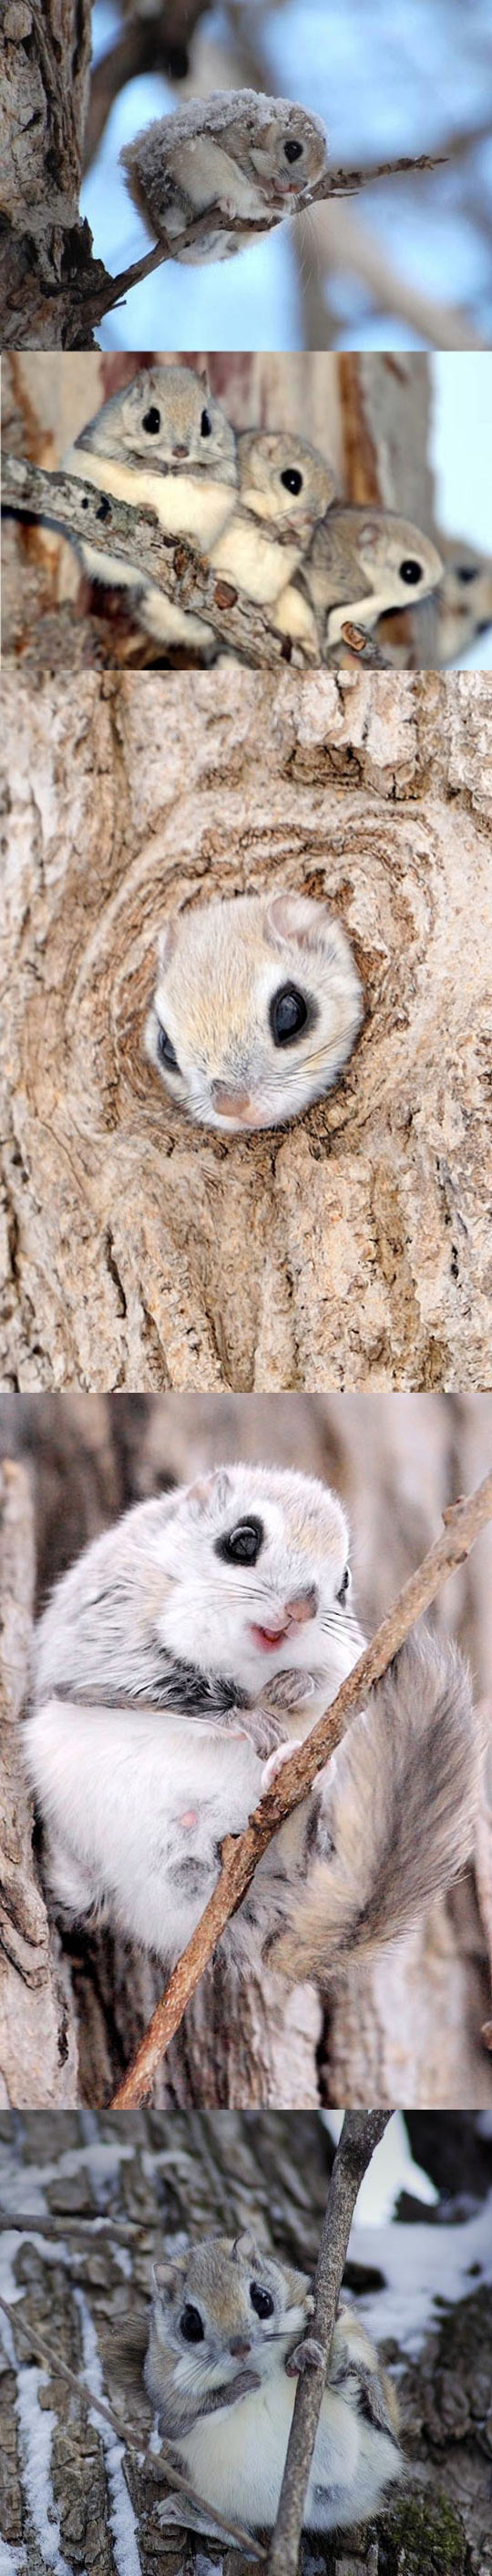 Cute Japanese Flying Squirrels